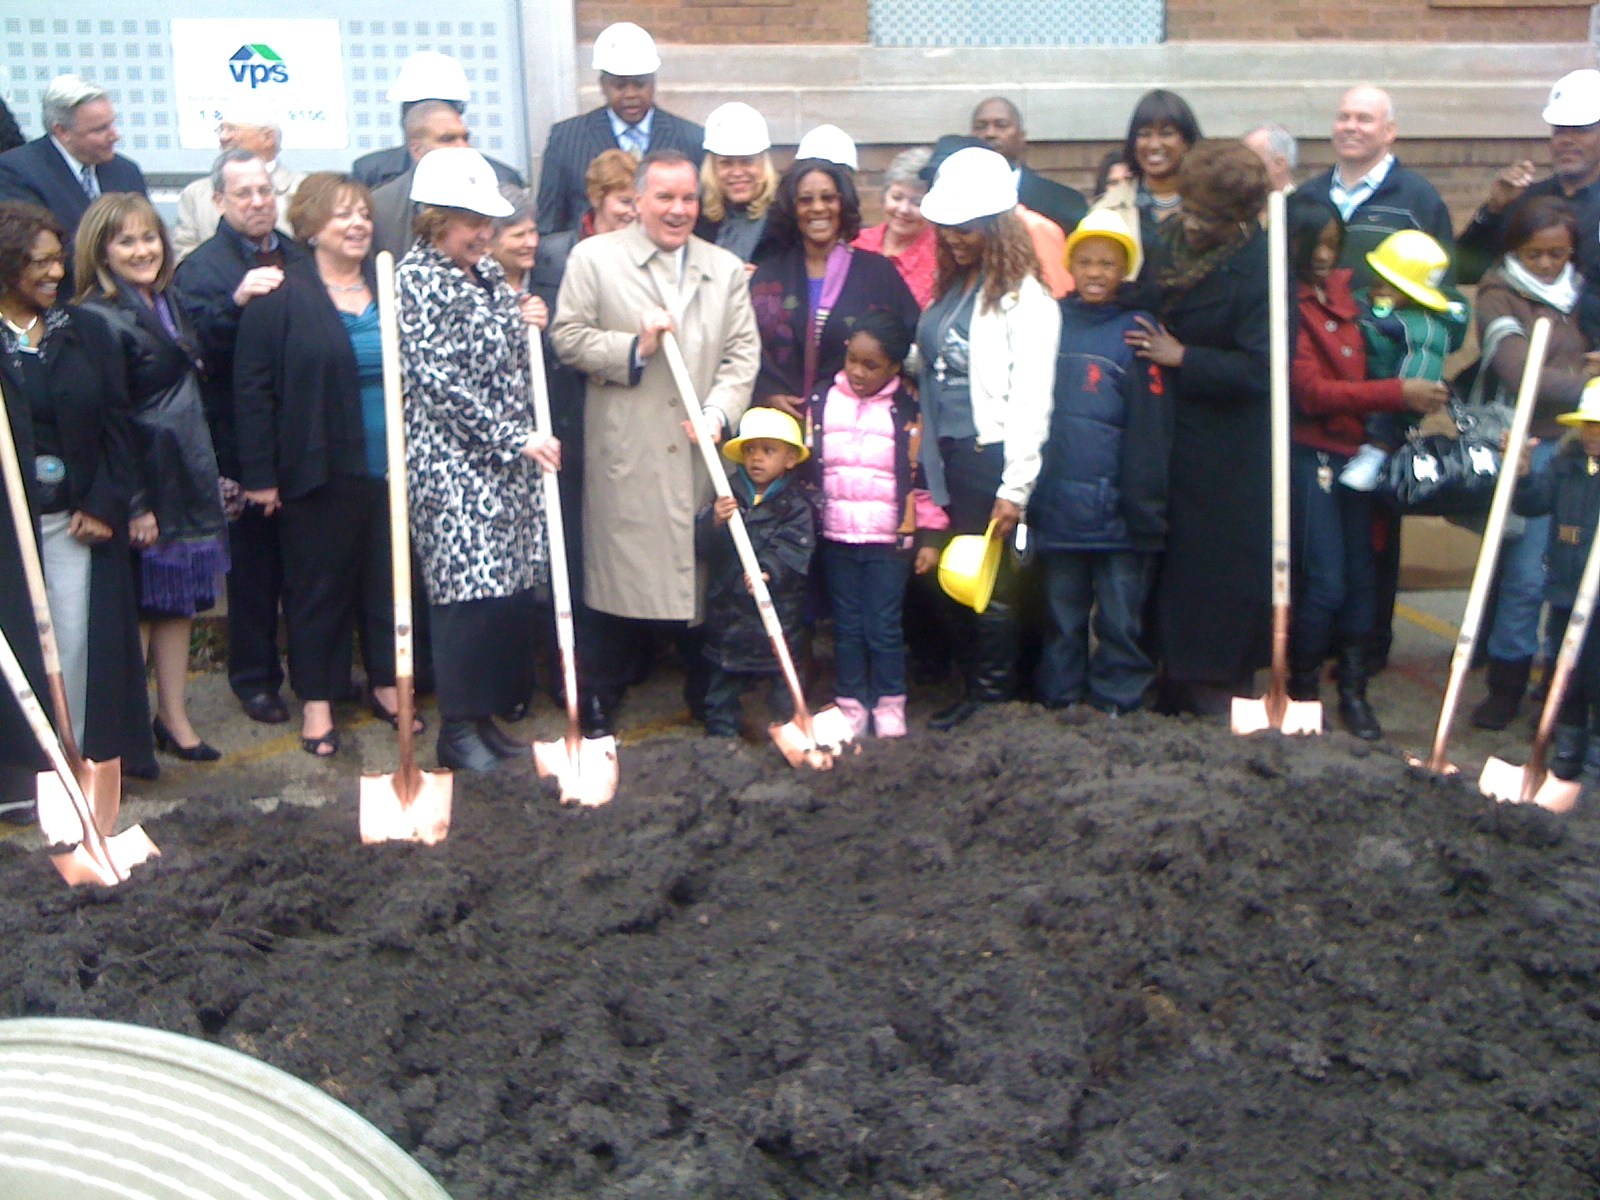 New Moms Inc. CEO Audalee McLoughlin, Mayor Daley, Ald. Emma Mitts and Queenetta Mables celebrate a new facility for teen mothers.